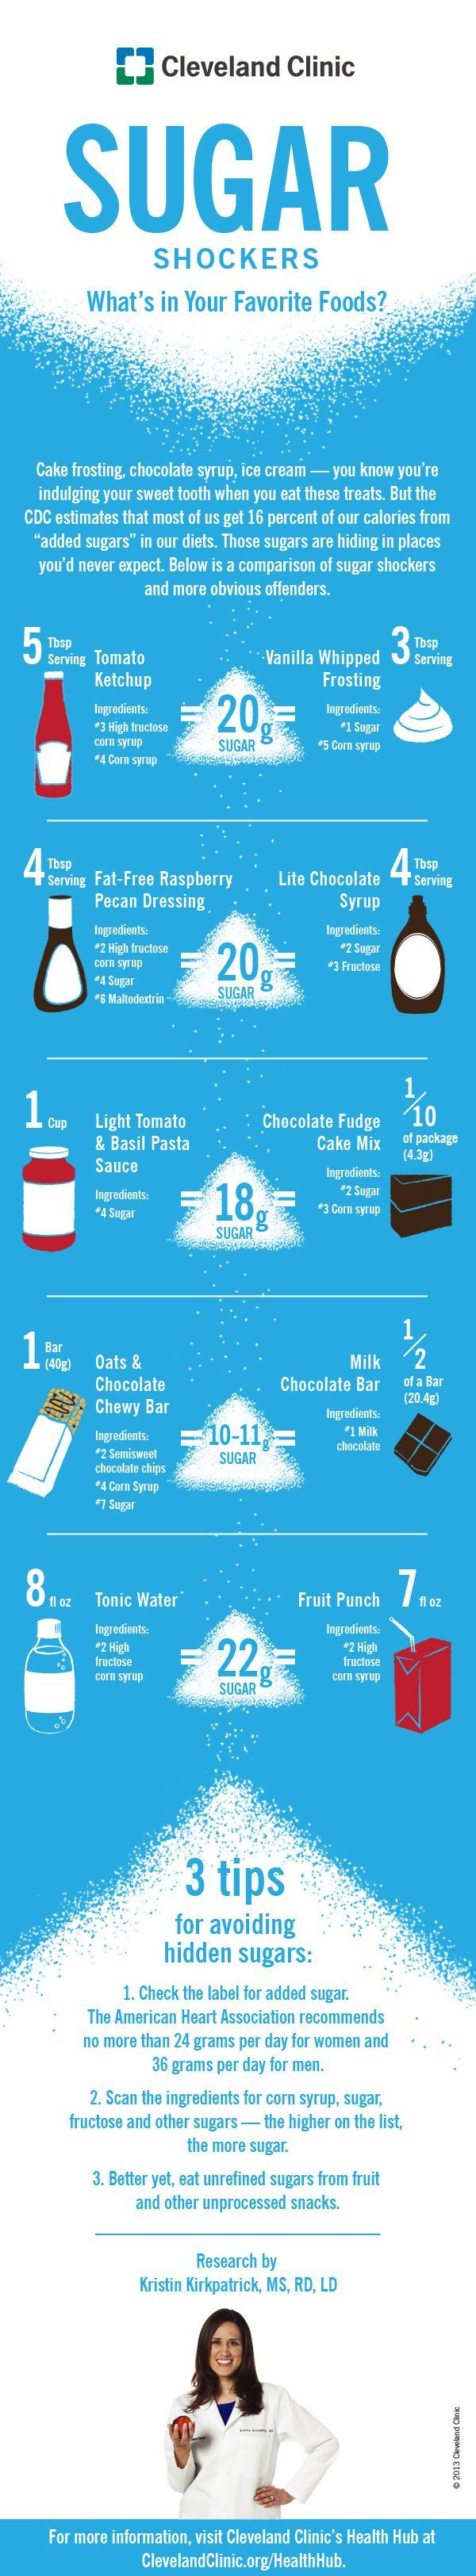 5 Sugar Shockers Whats In Your Favorite Foods